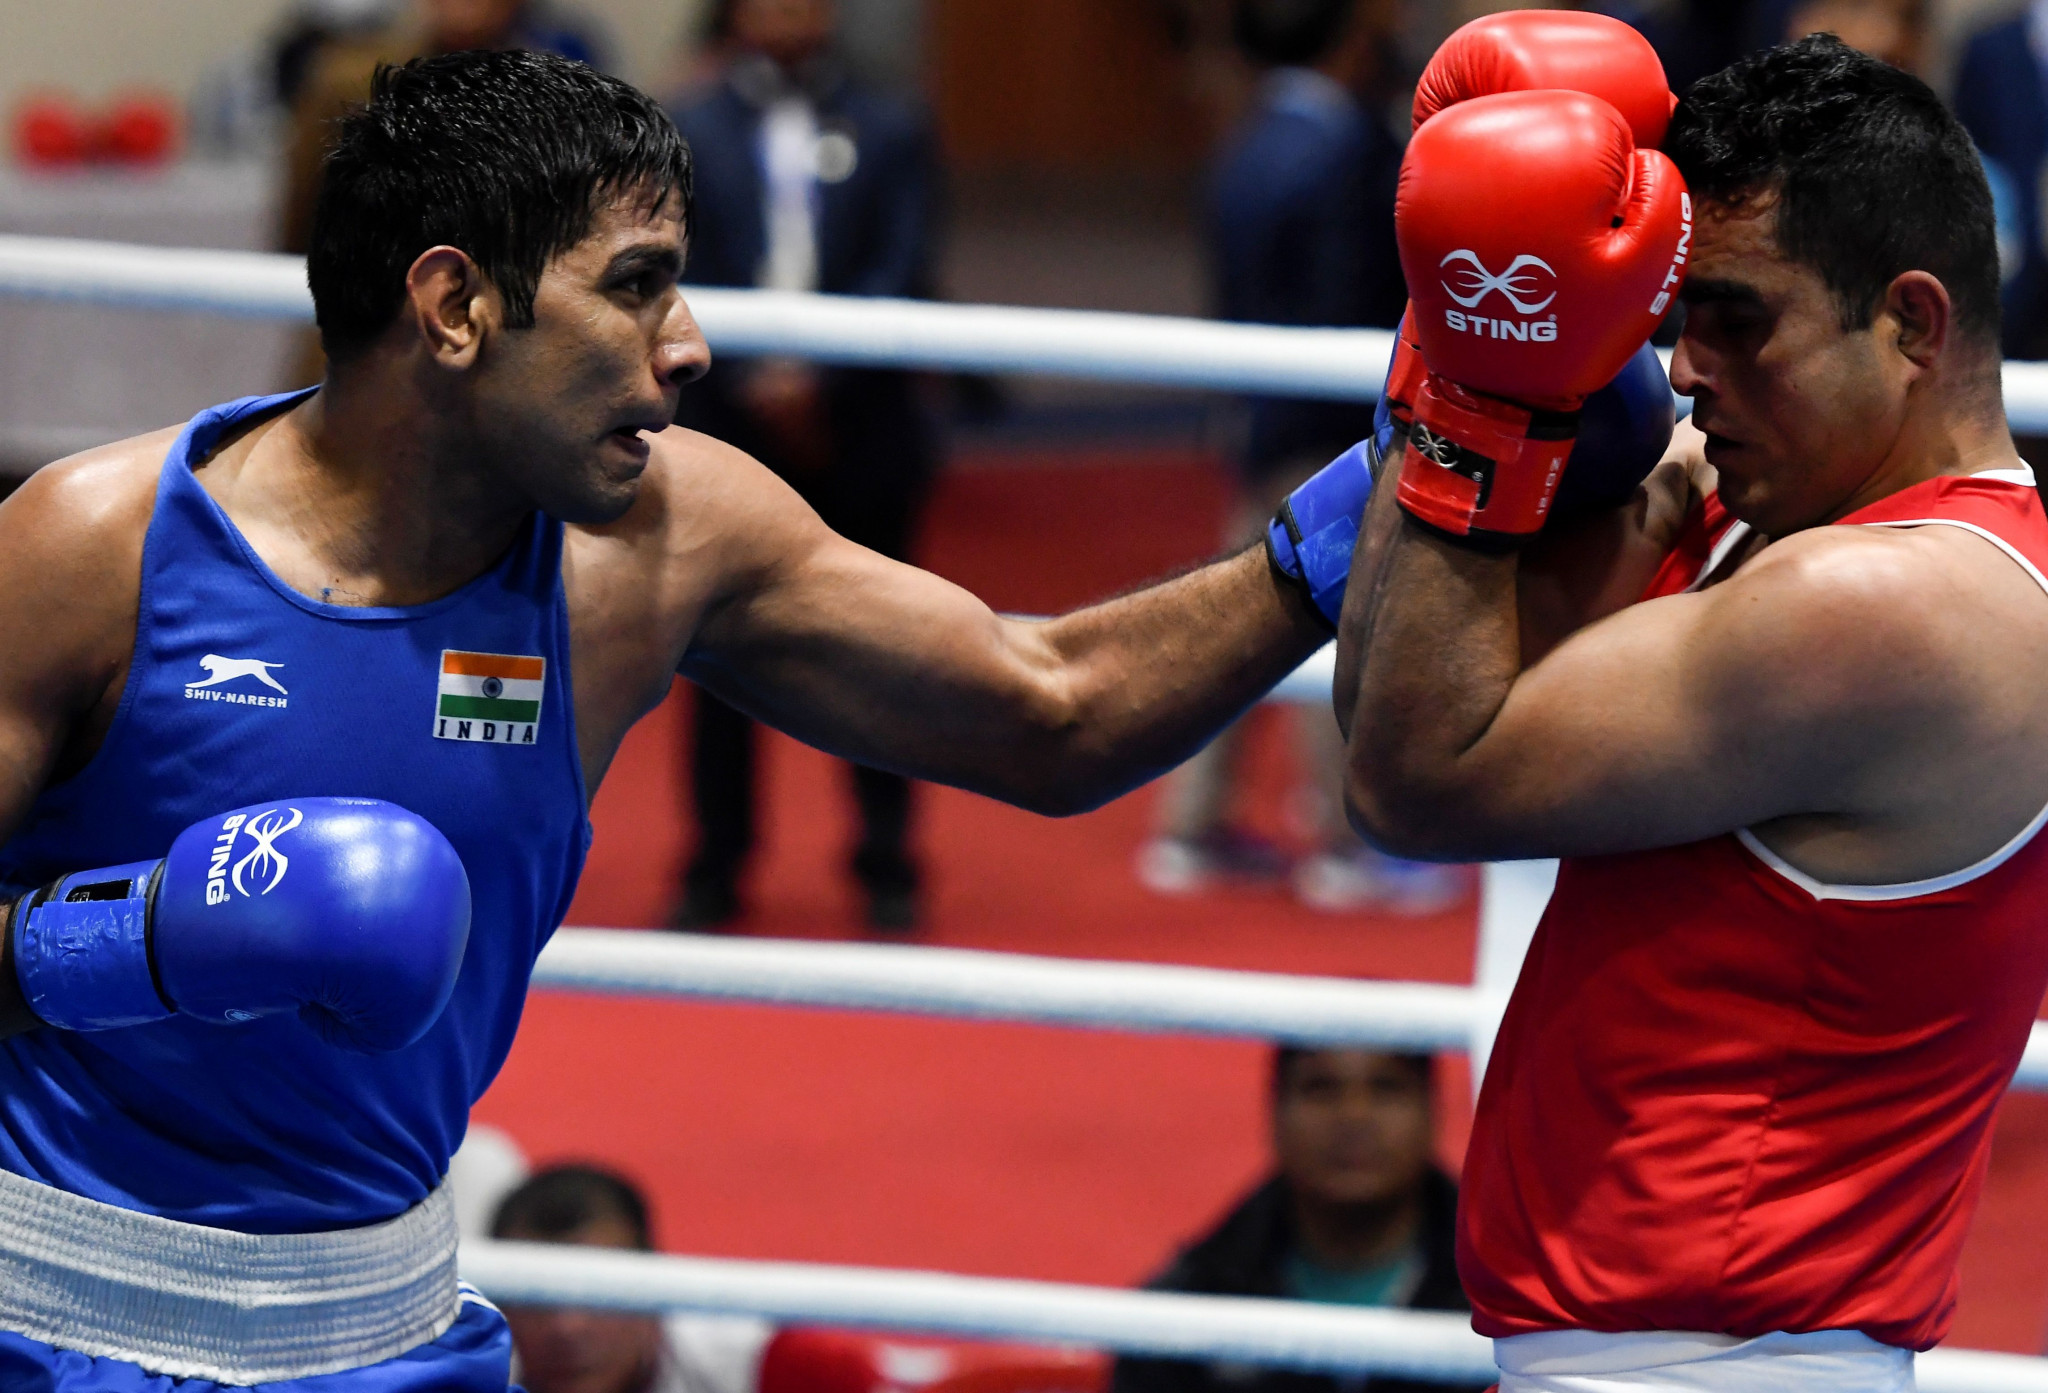 BFI official accuses AIBA of opening bids for 2021 World Championships before terminating contract with India